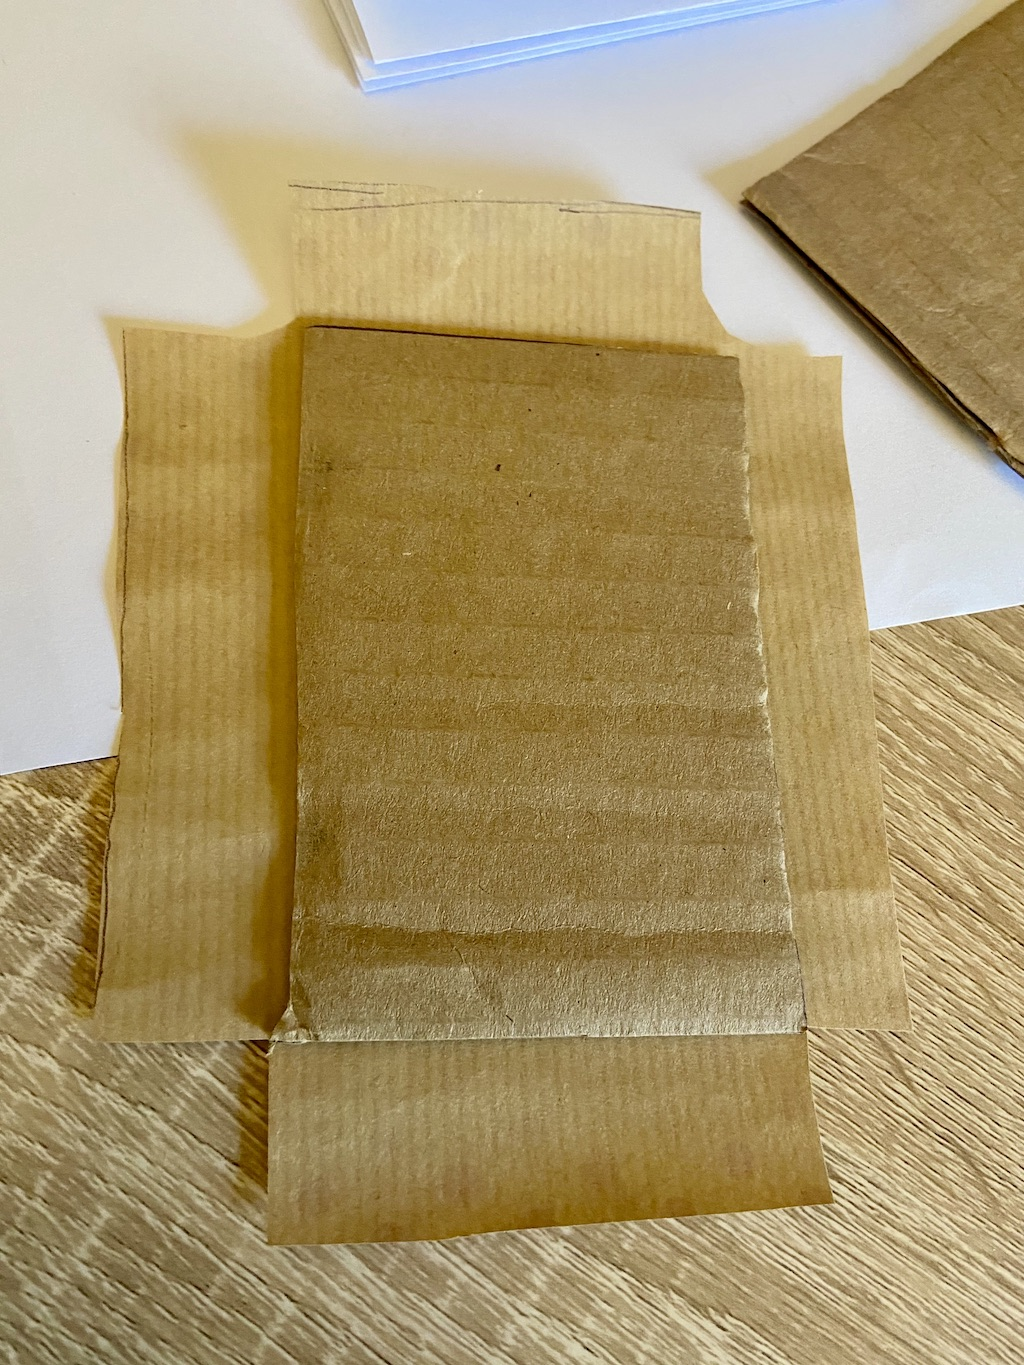 Glue your cardboard in the center of the scrap or wrapping paper, decorative side out.